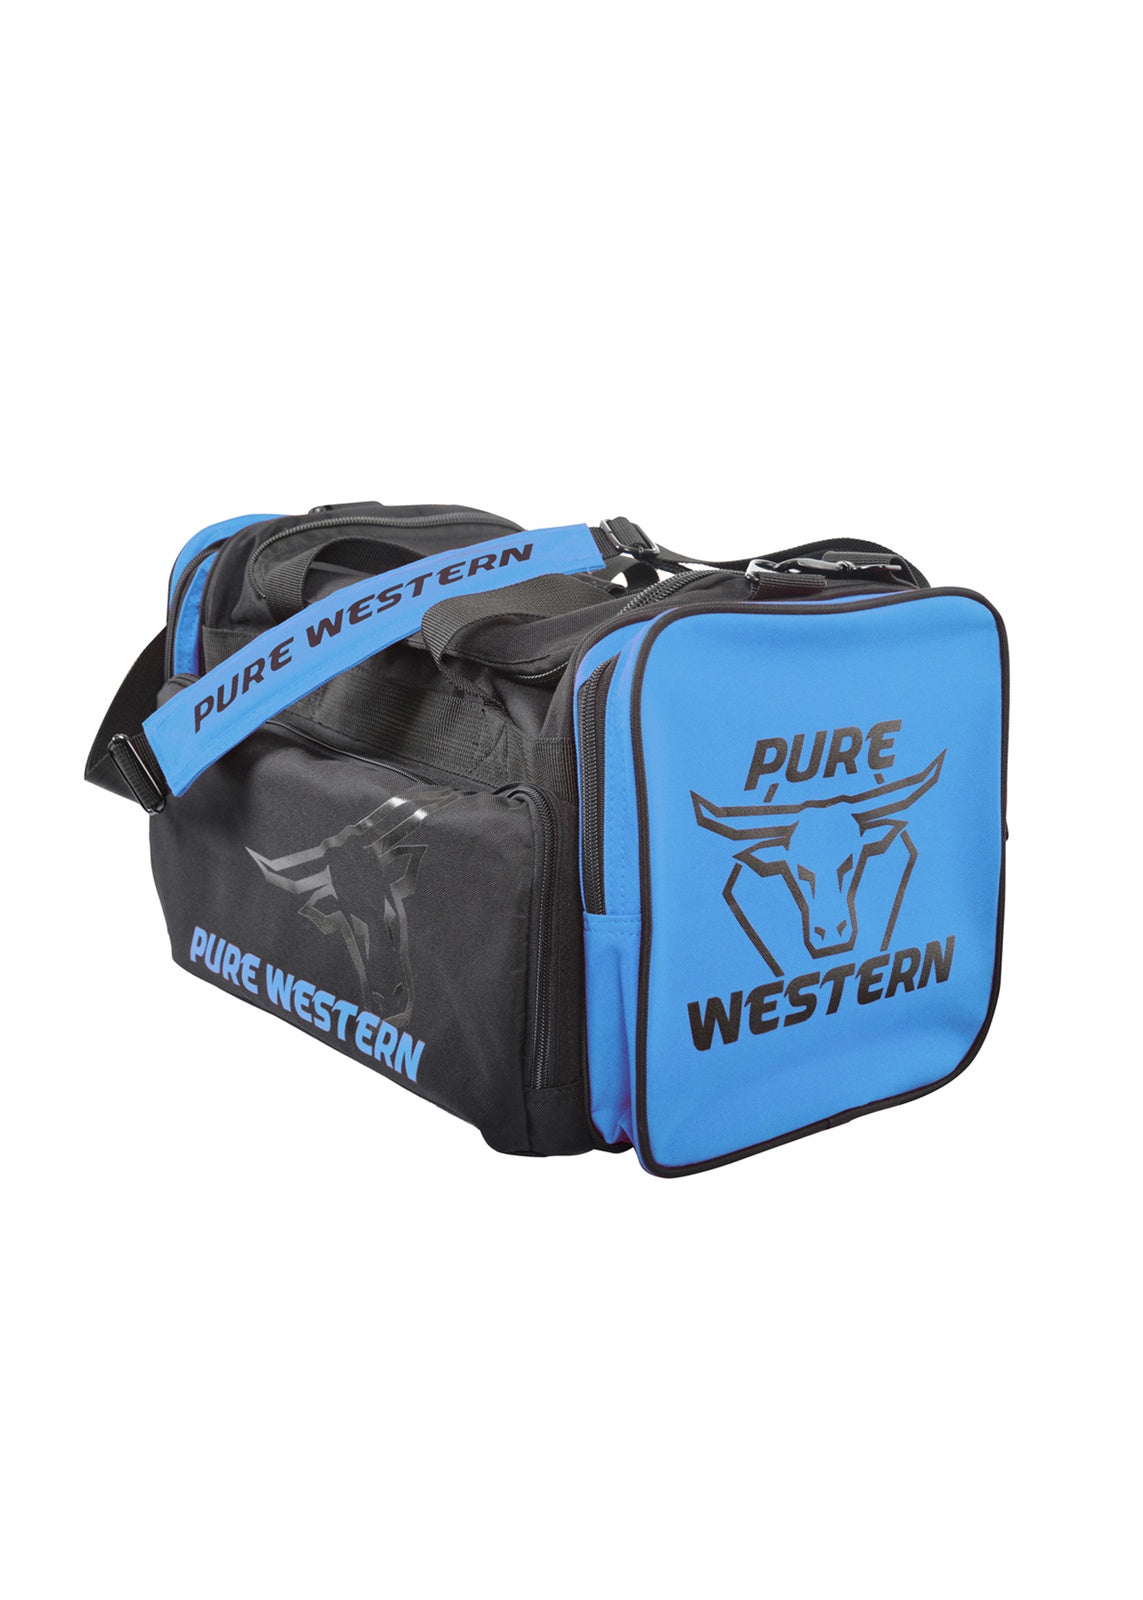 Pure Western Small Gear Bag  - Blue and Pink